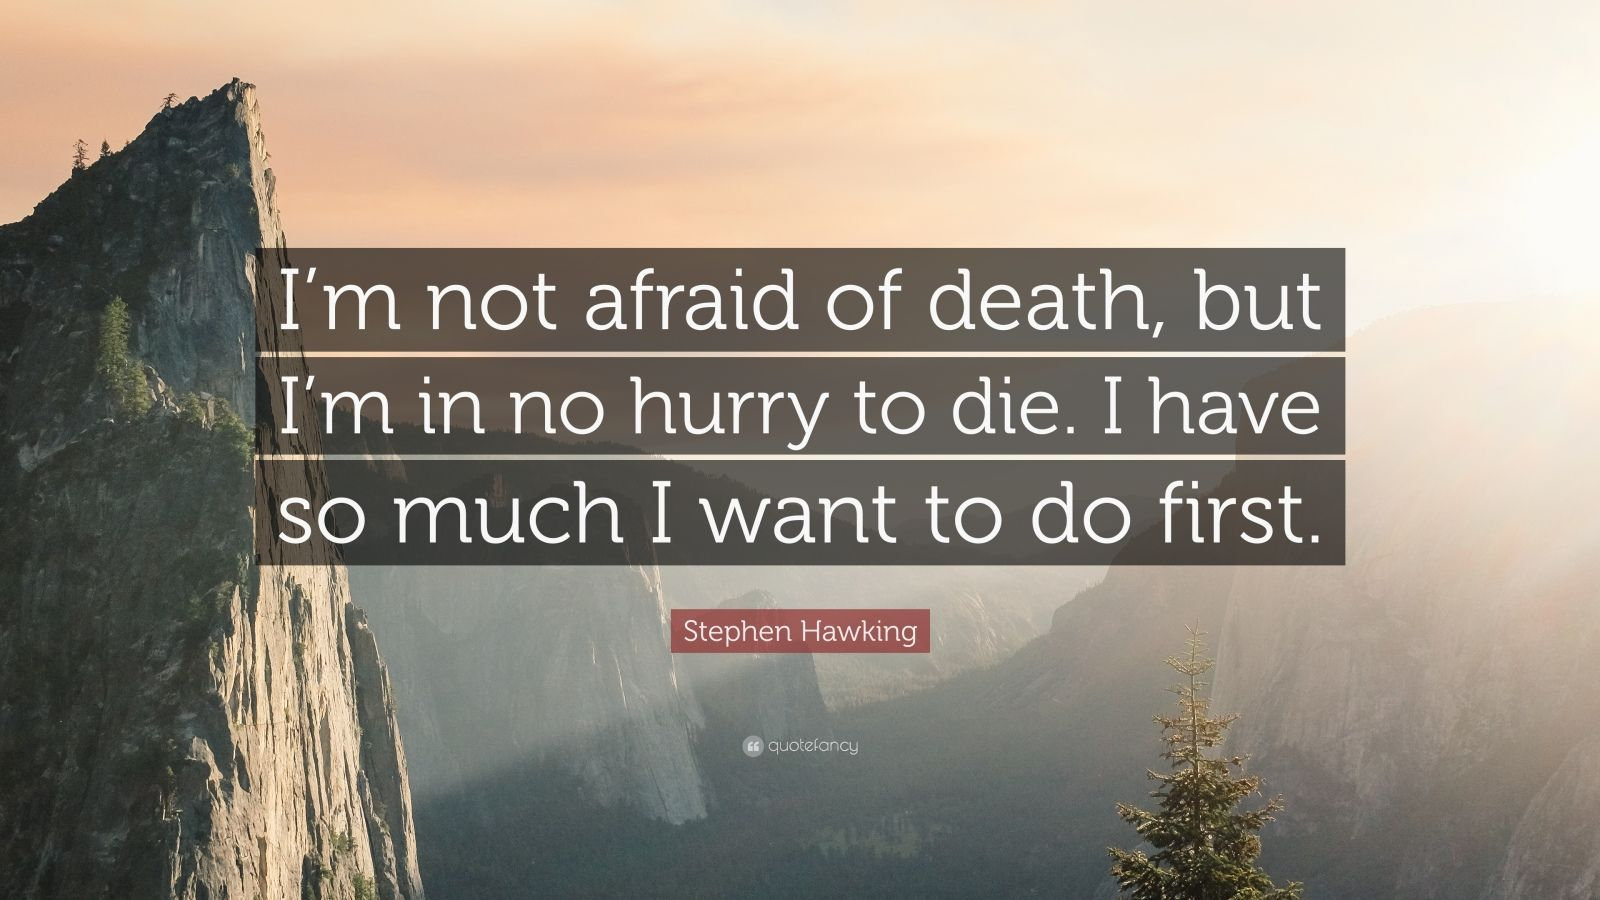 """Stephen Hawking Quote: """"I'm not afraid of death, but I'm in no hurry to die. I have so much I want to do first."""""""